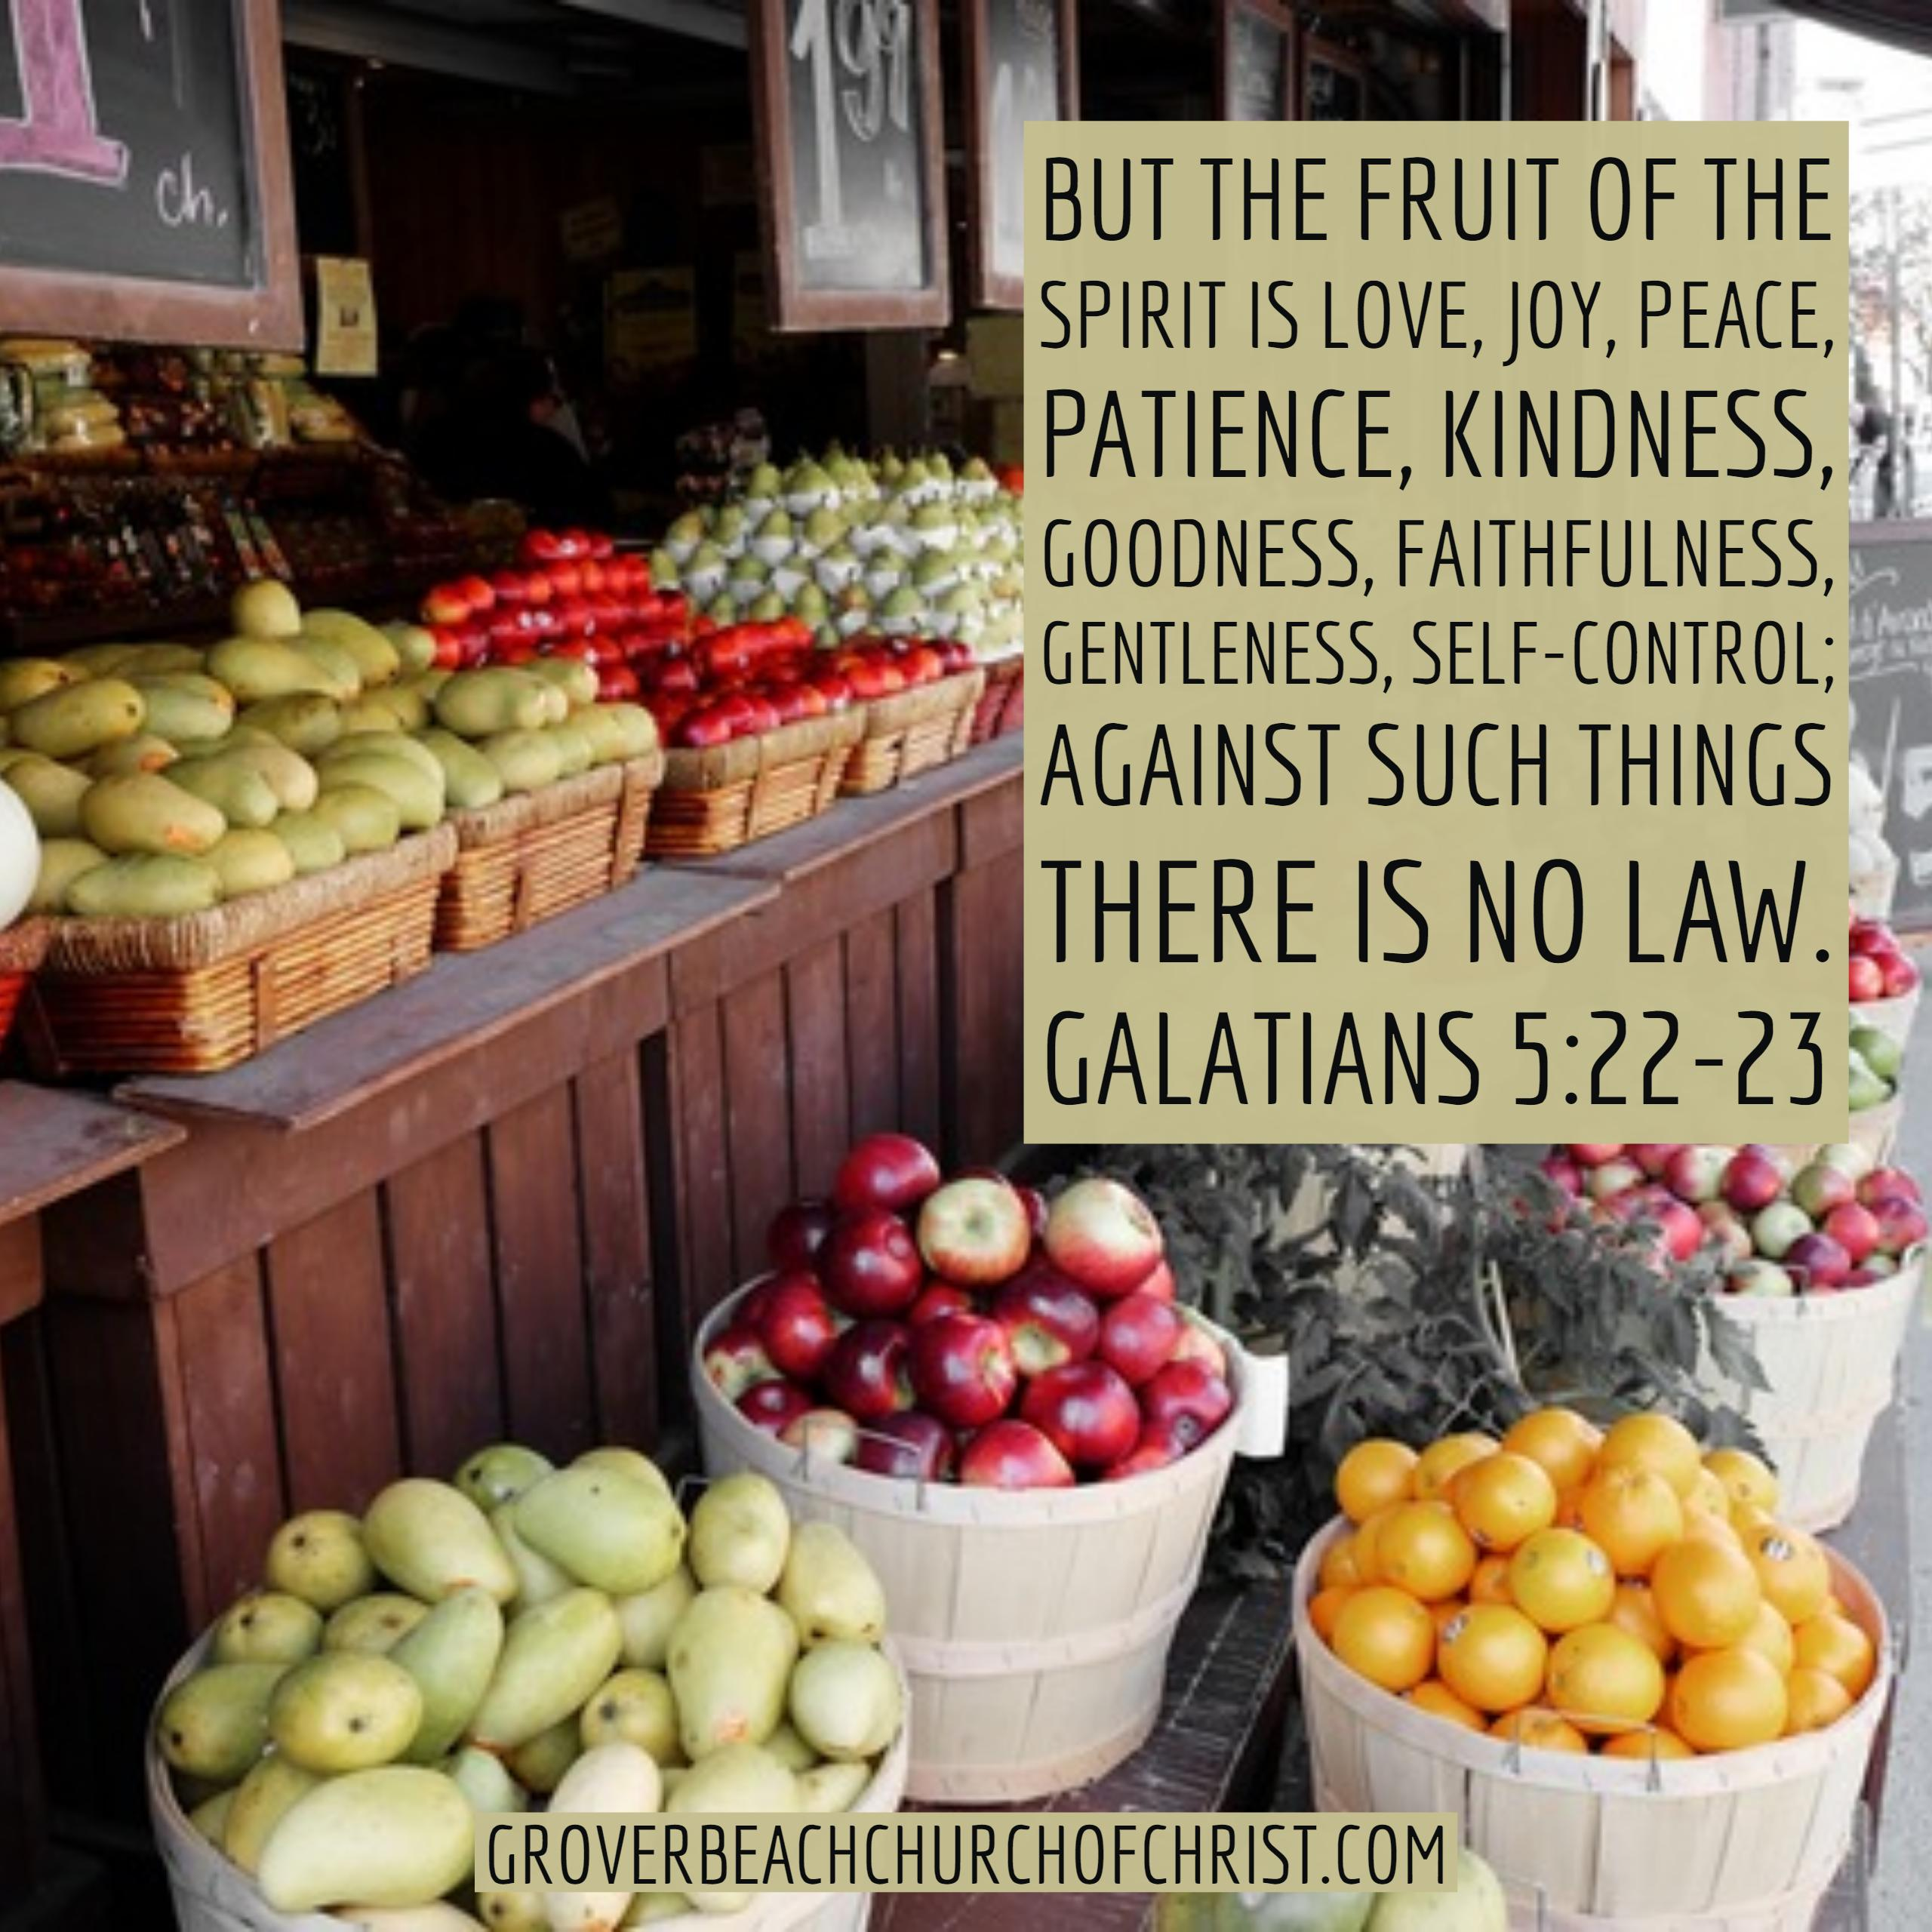 galatians-5-22-23-fruit-of-the-spirit